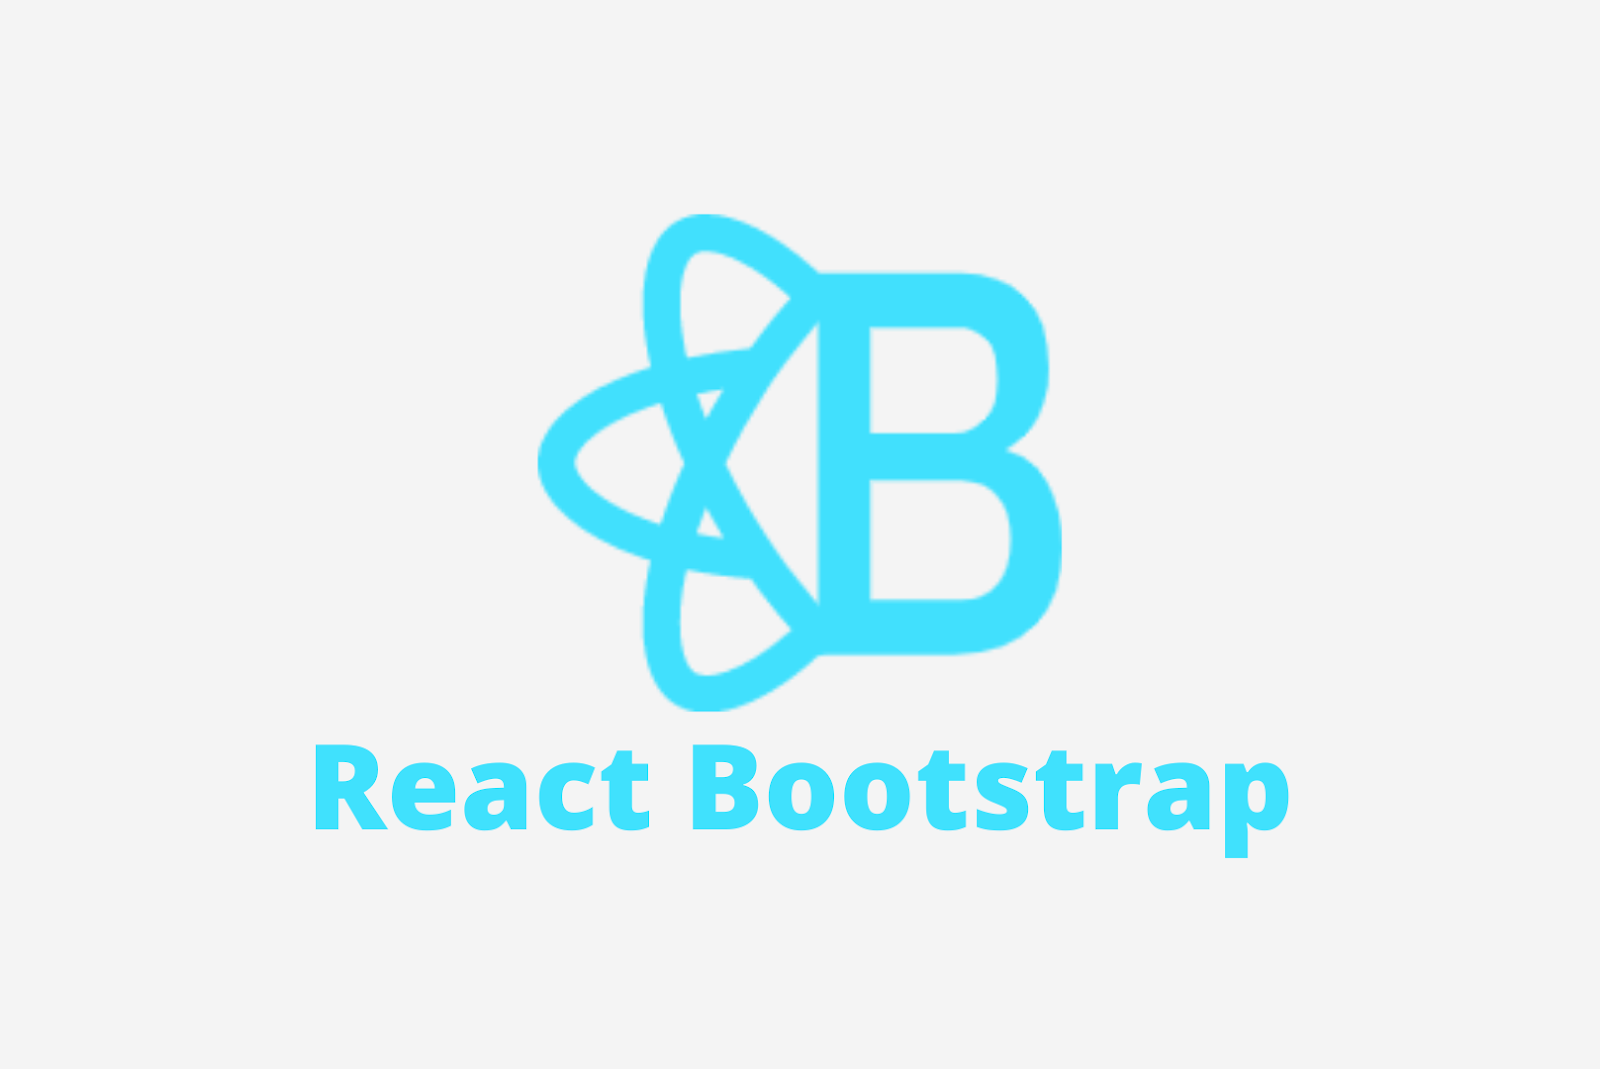 React Bootstrap React UI component library